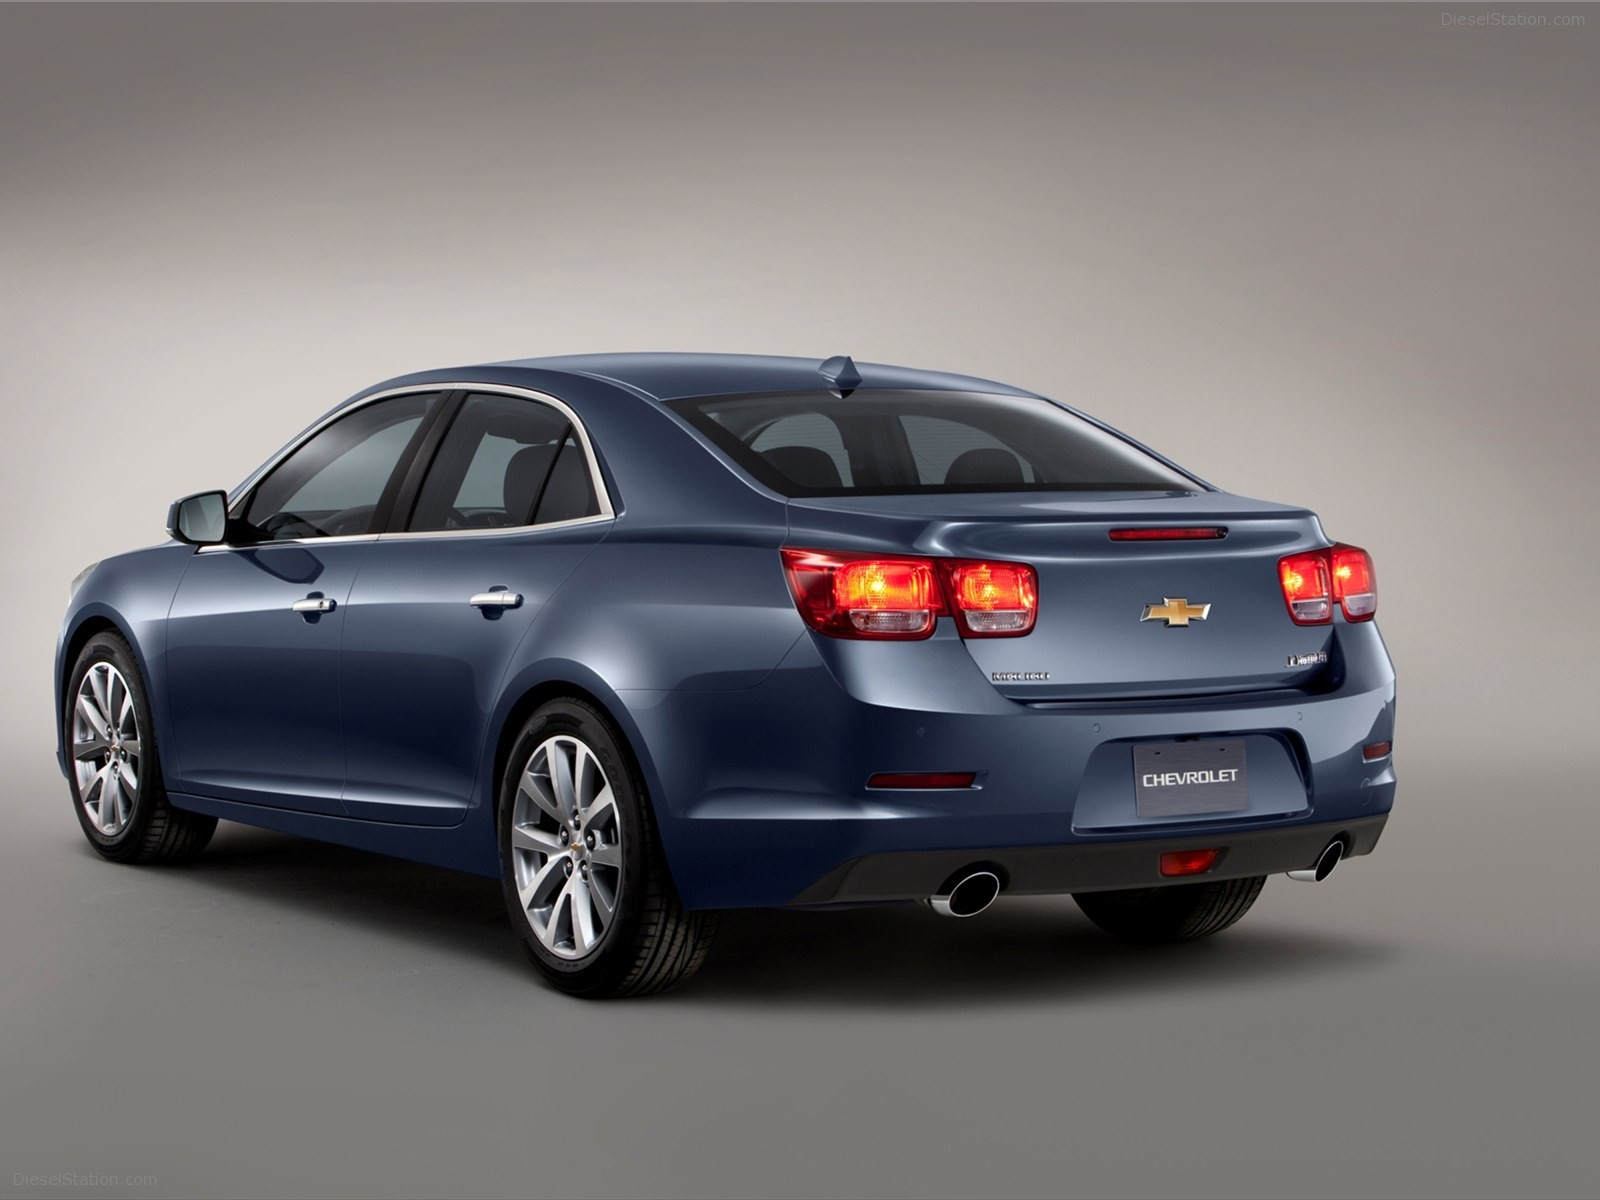 2012 chevrolet malibu information and photos momentcar. Black Bedroom Furniture Sets. Home Design Ideas